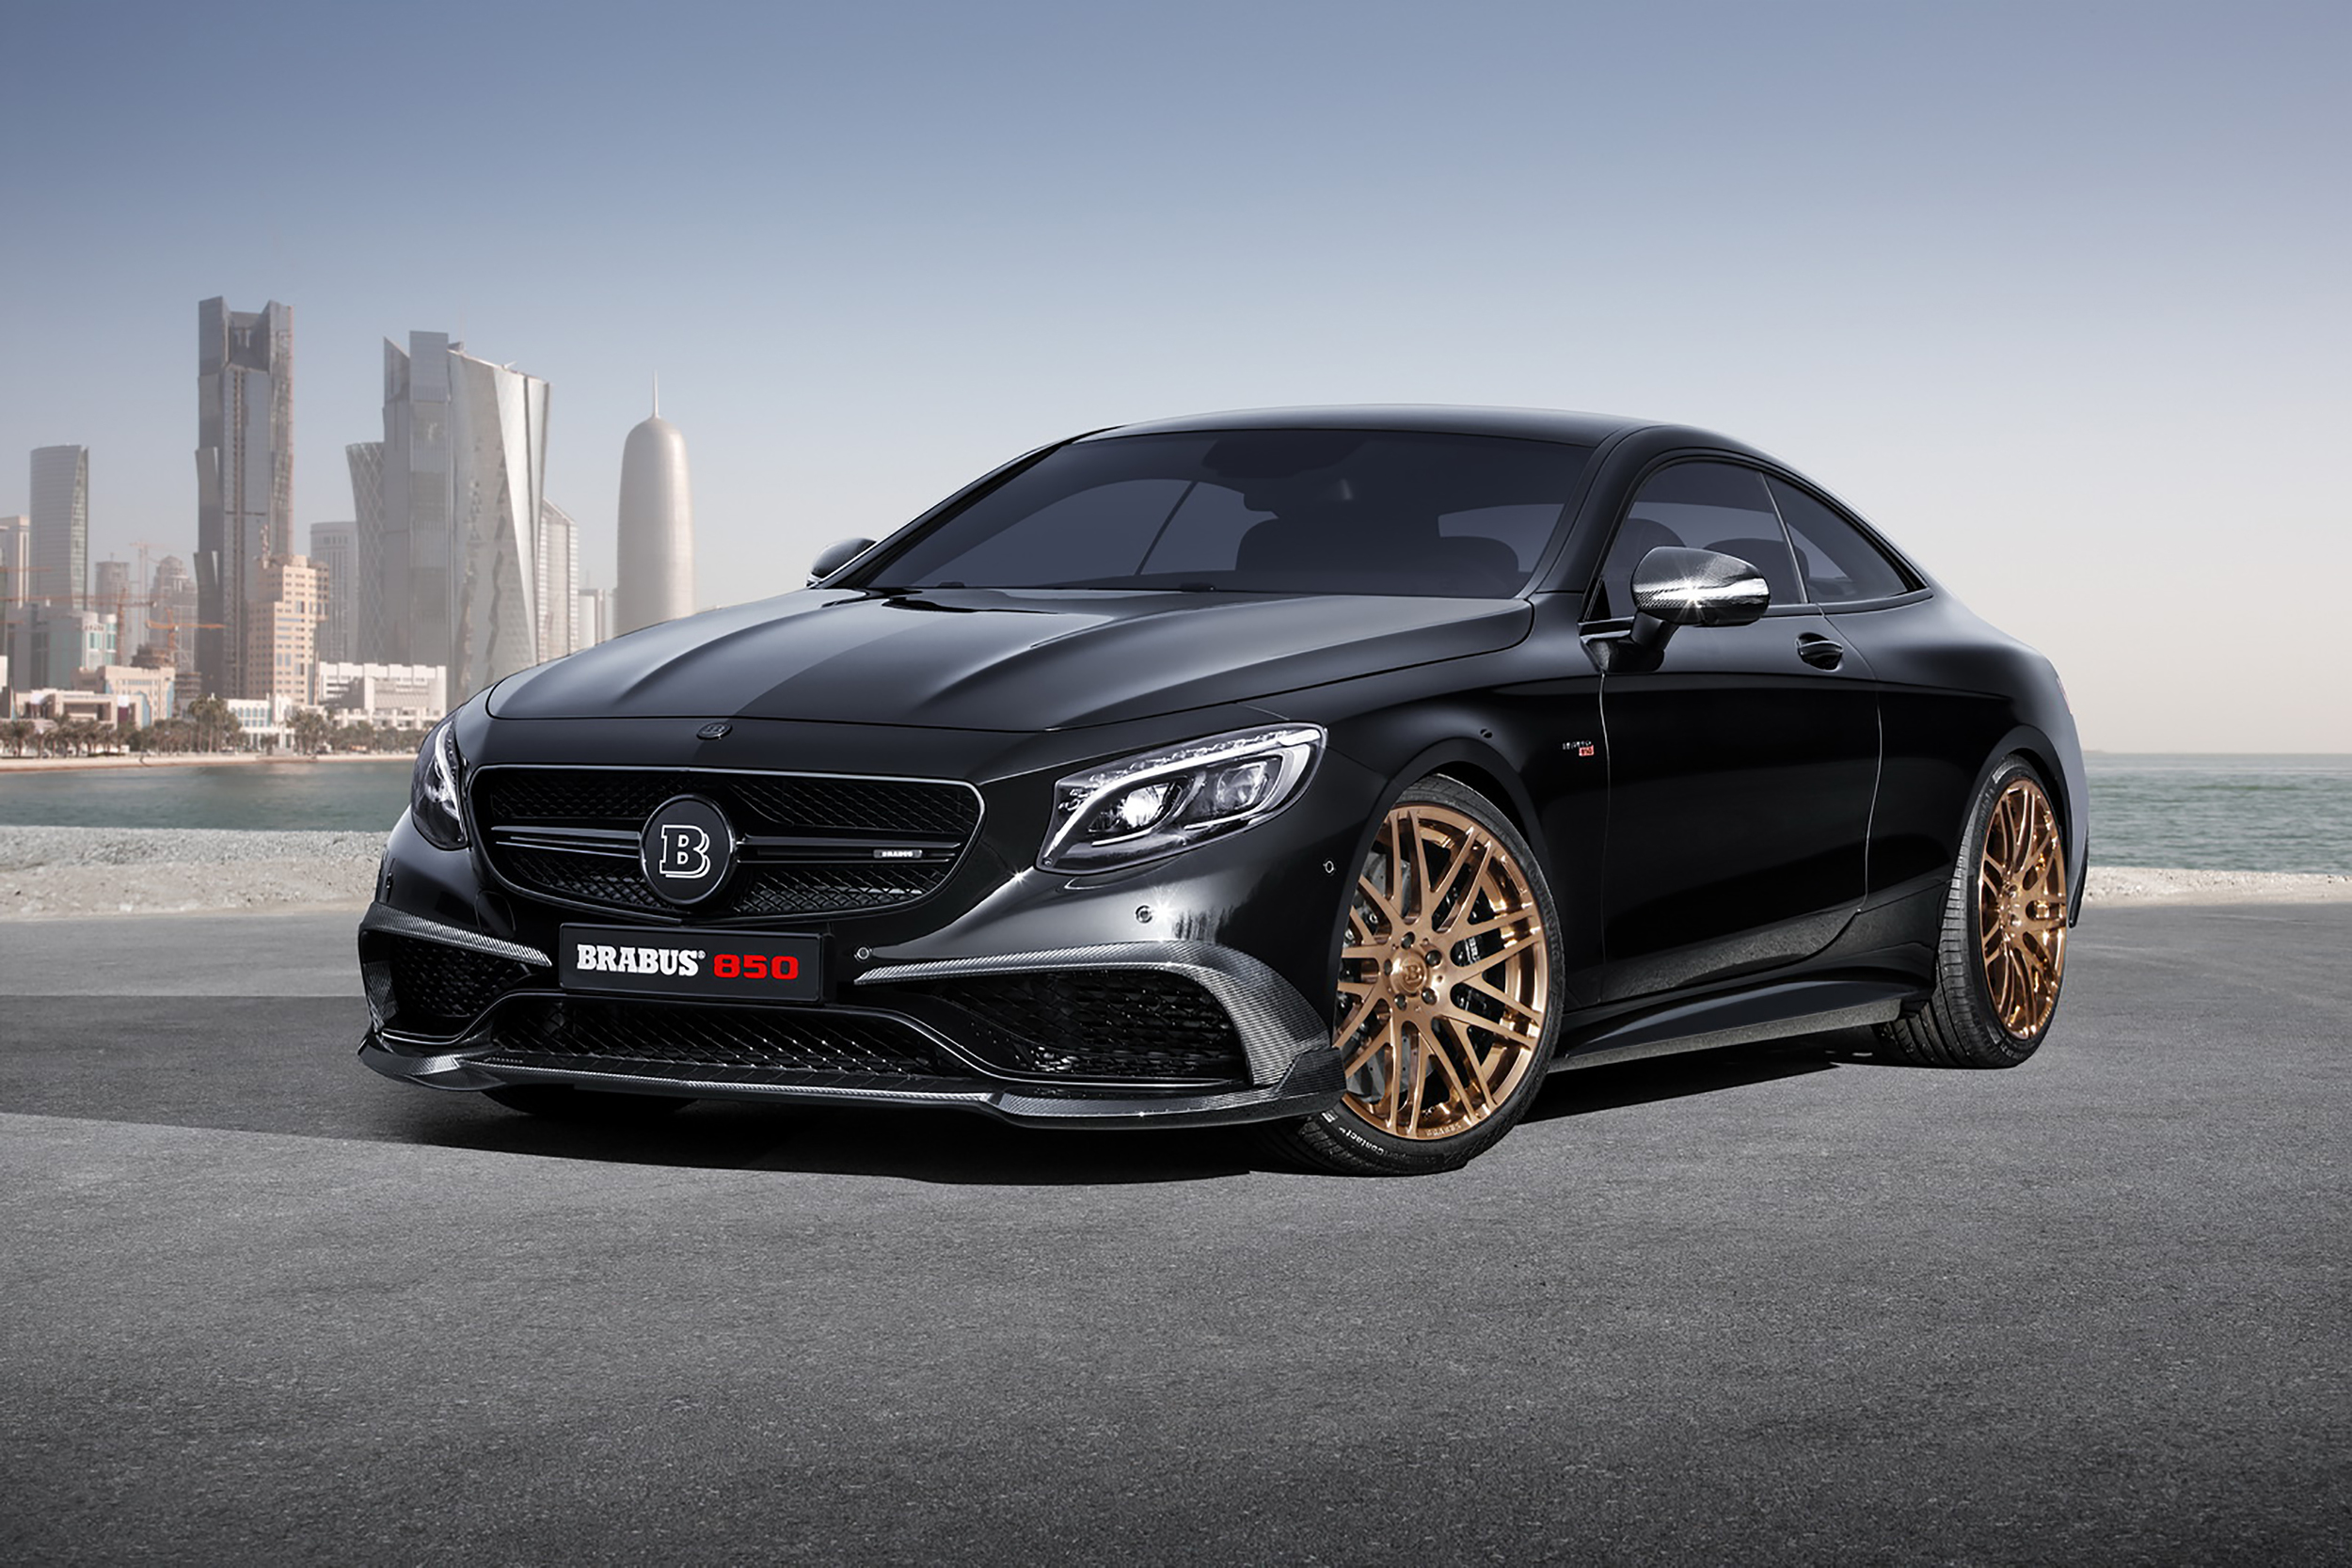 ' ' from the web at 'http://www.blogcdn.com/slideshows/images/slides/335/946/2/S3359462/slug/l/brabus-s-class-coupe-01-1.jpg'